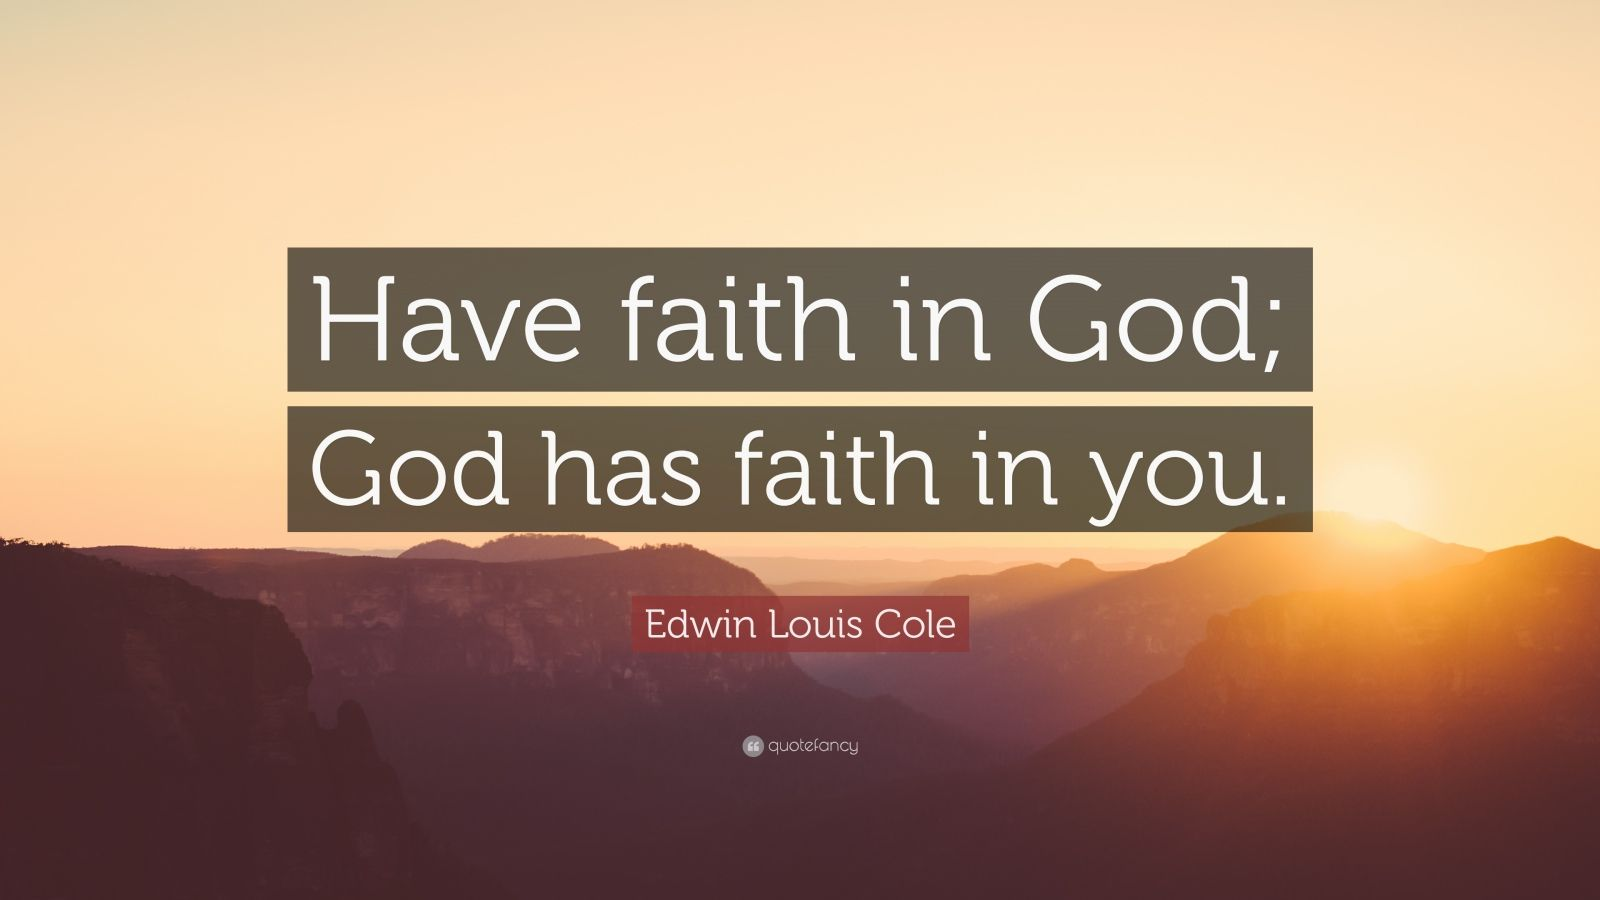 faith in god The faith in god is mentioned in the book of genesis chapter 15 verse 6 and in the book of exodus chapter 4 verse 31 and in the book of isaiah, chapter 43 verse 10, in the 24 books of the jewish bible the word translated as faith here is the hebrew word אָמַן which can also be translated believe,.